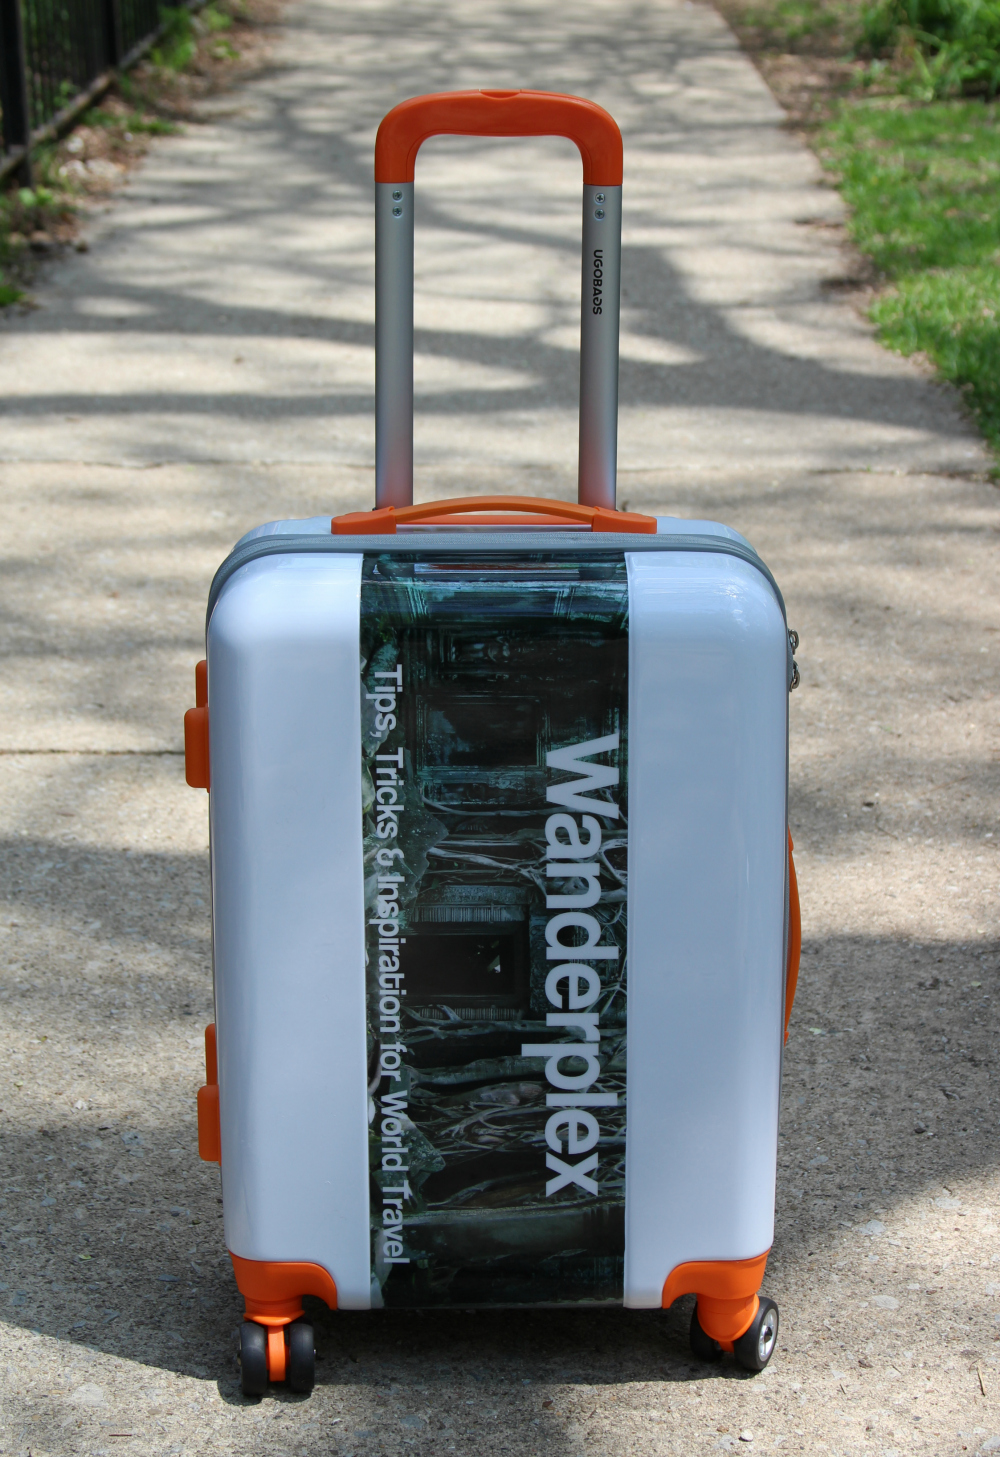 Ugobags customized luggage